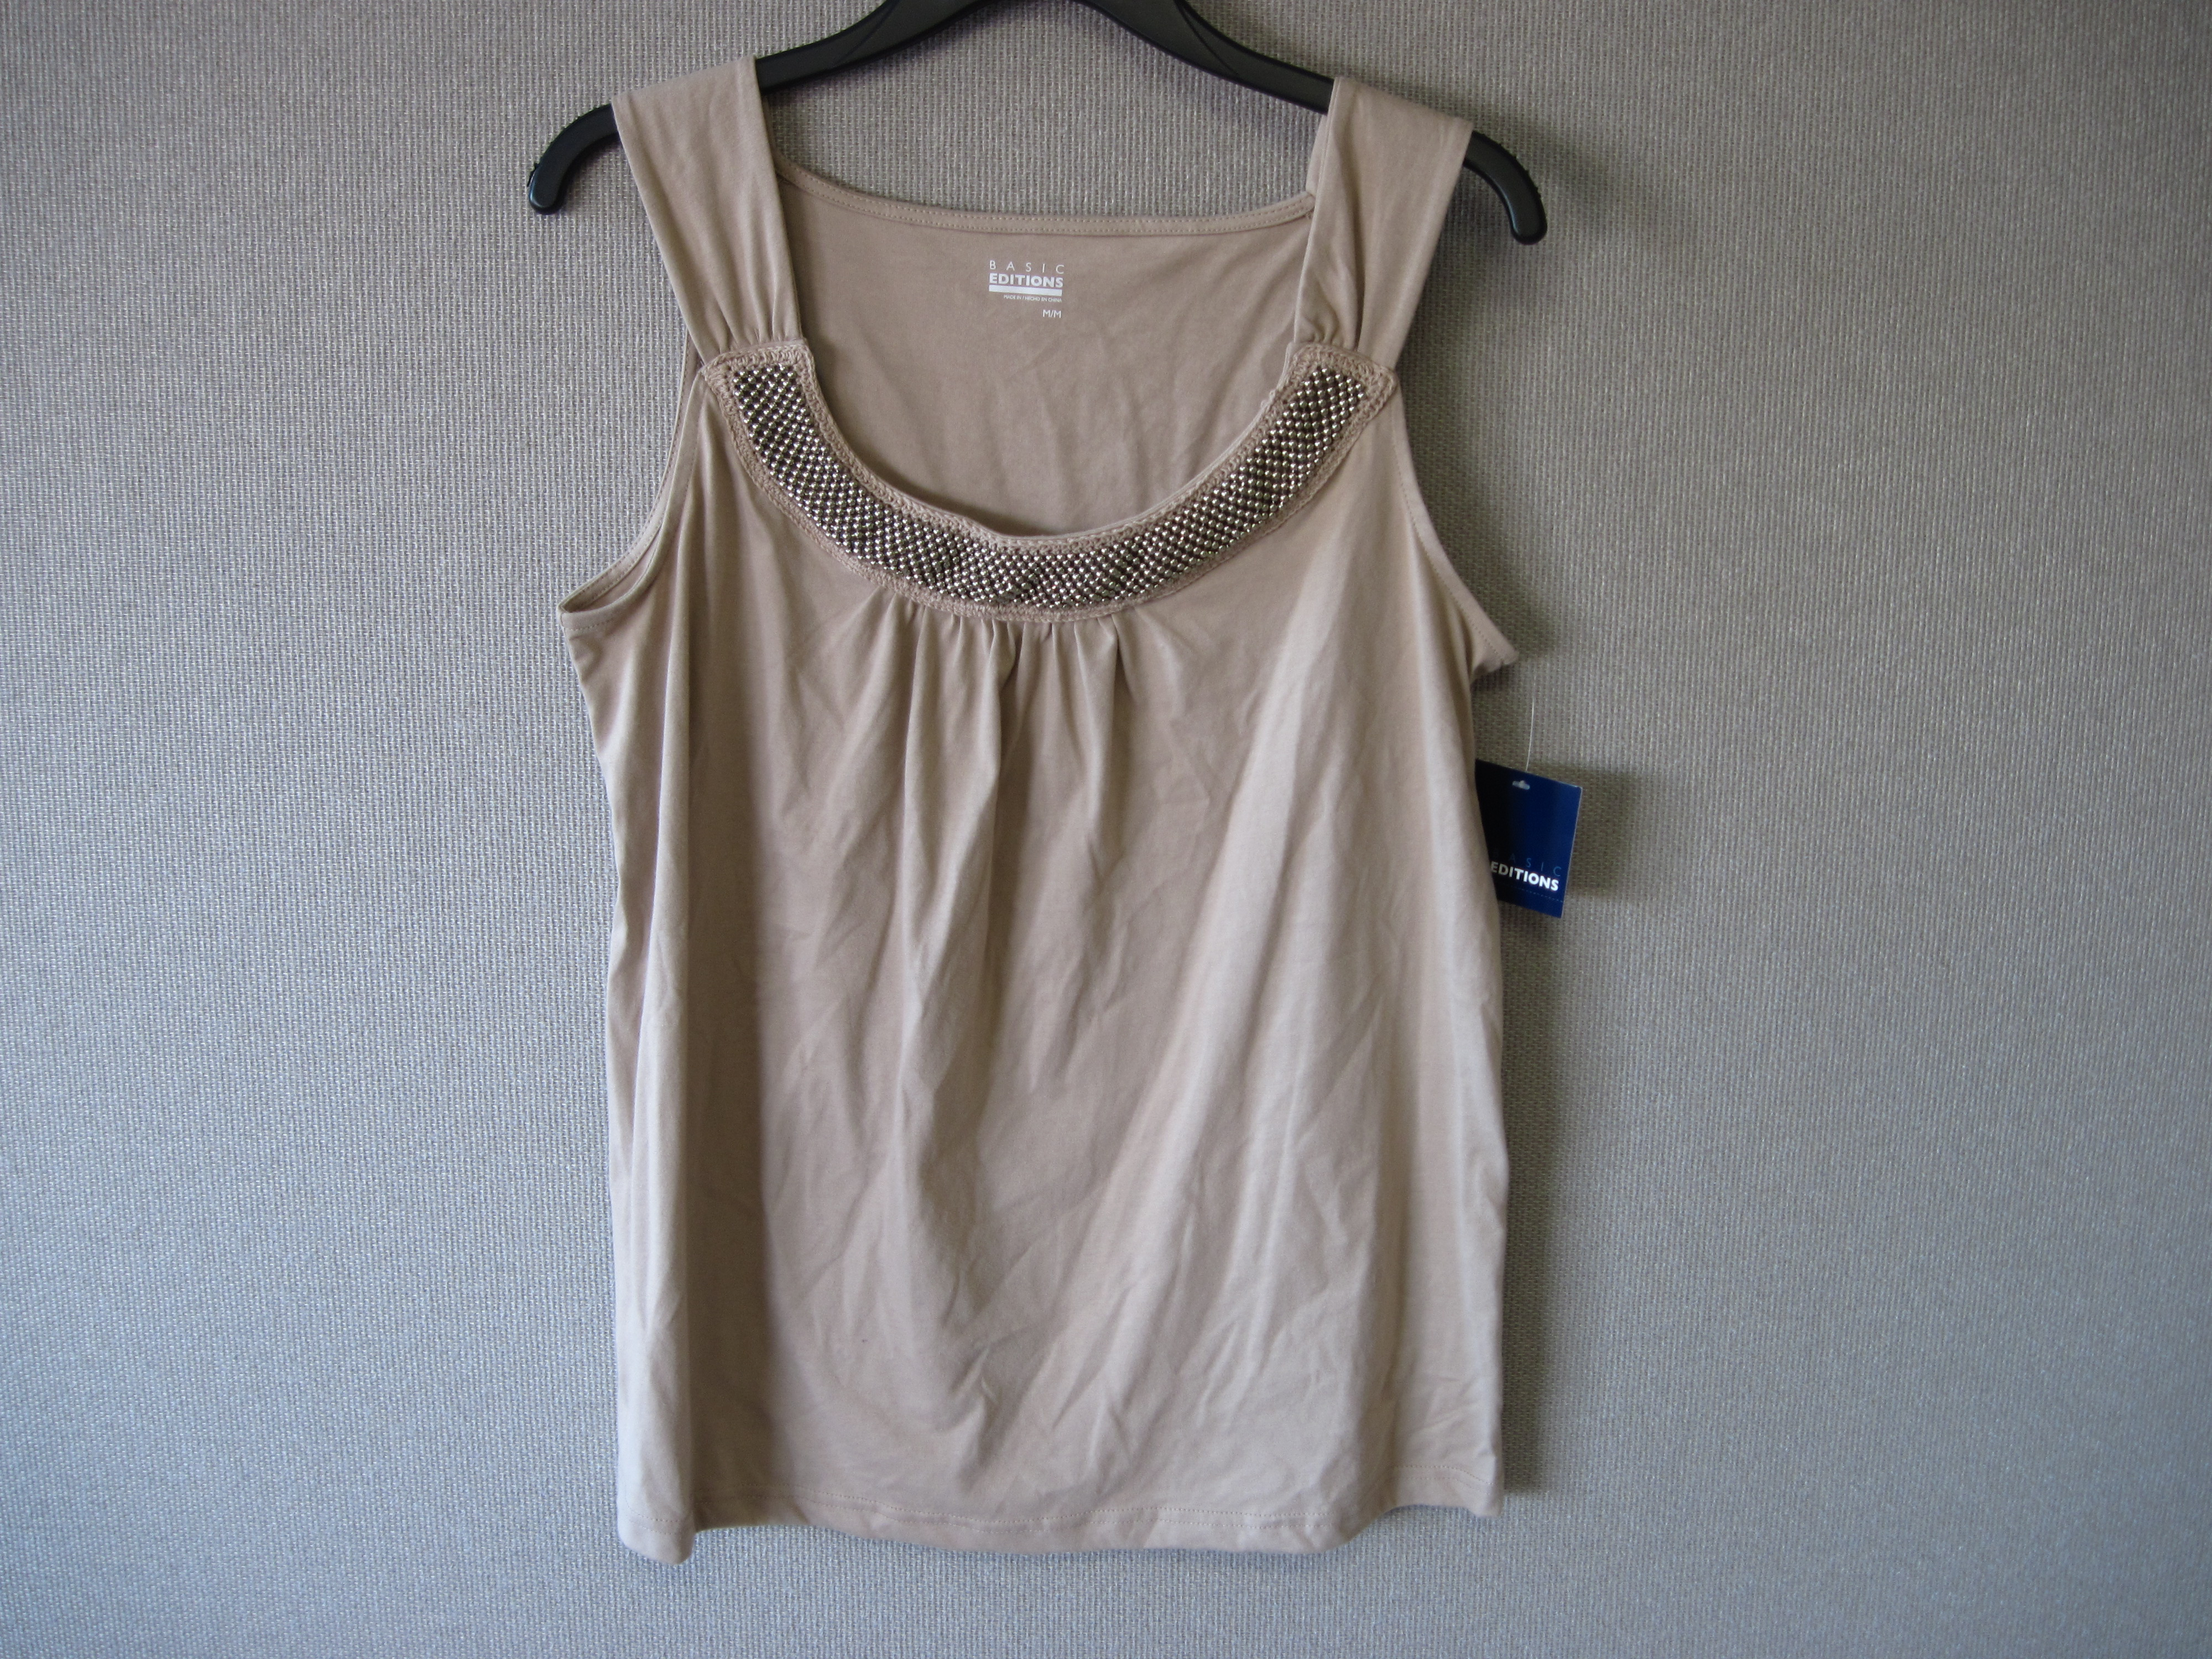 Basic Editions XL Beaded Tank Top Tan